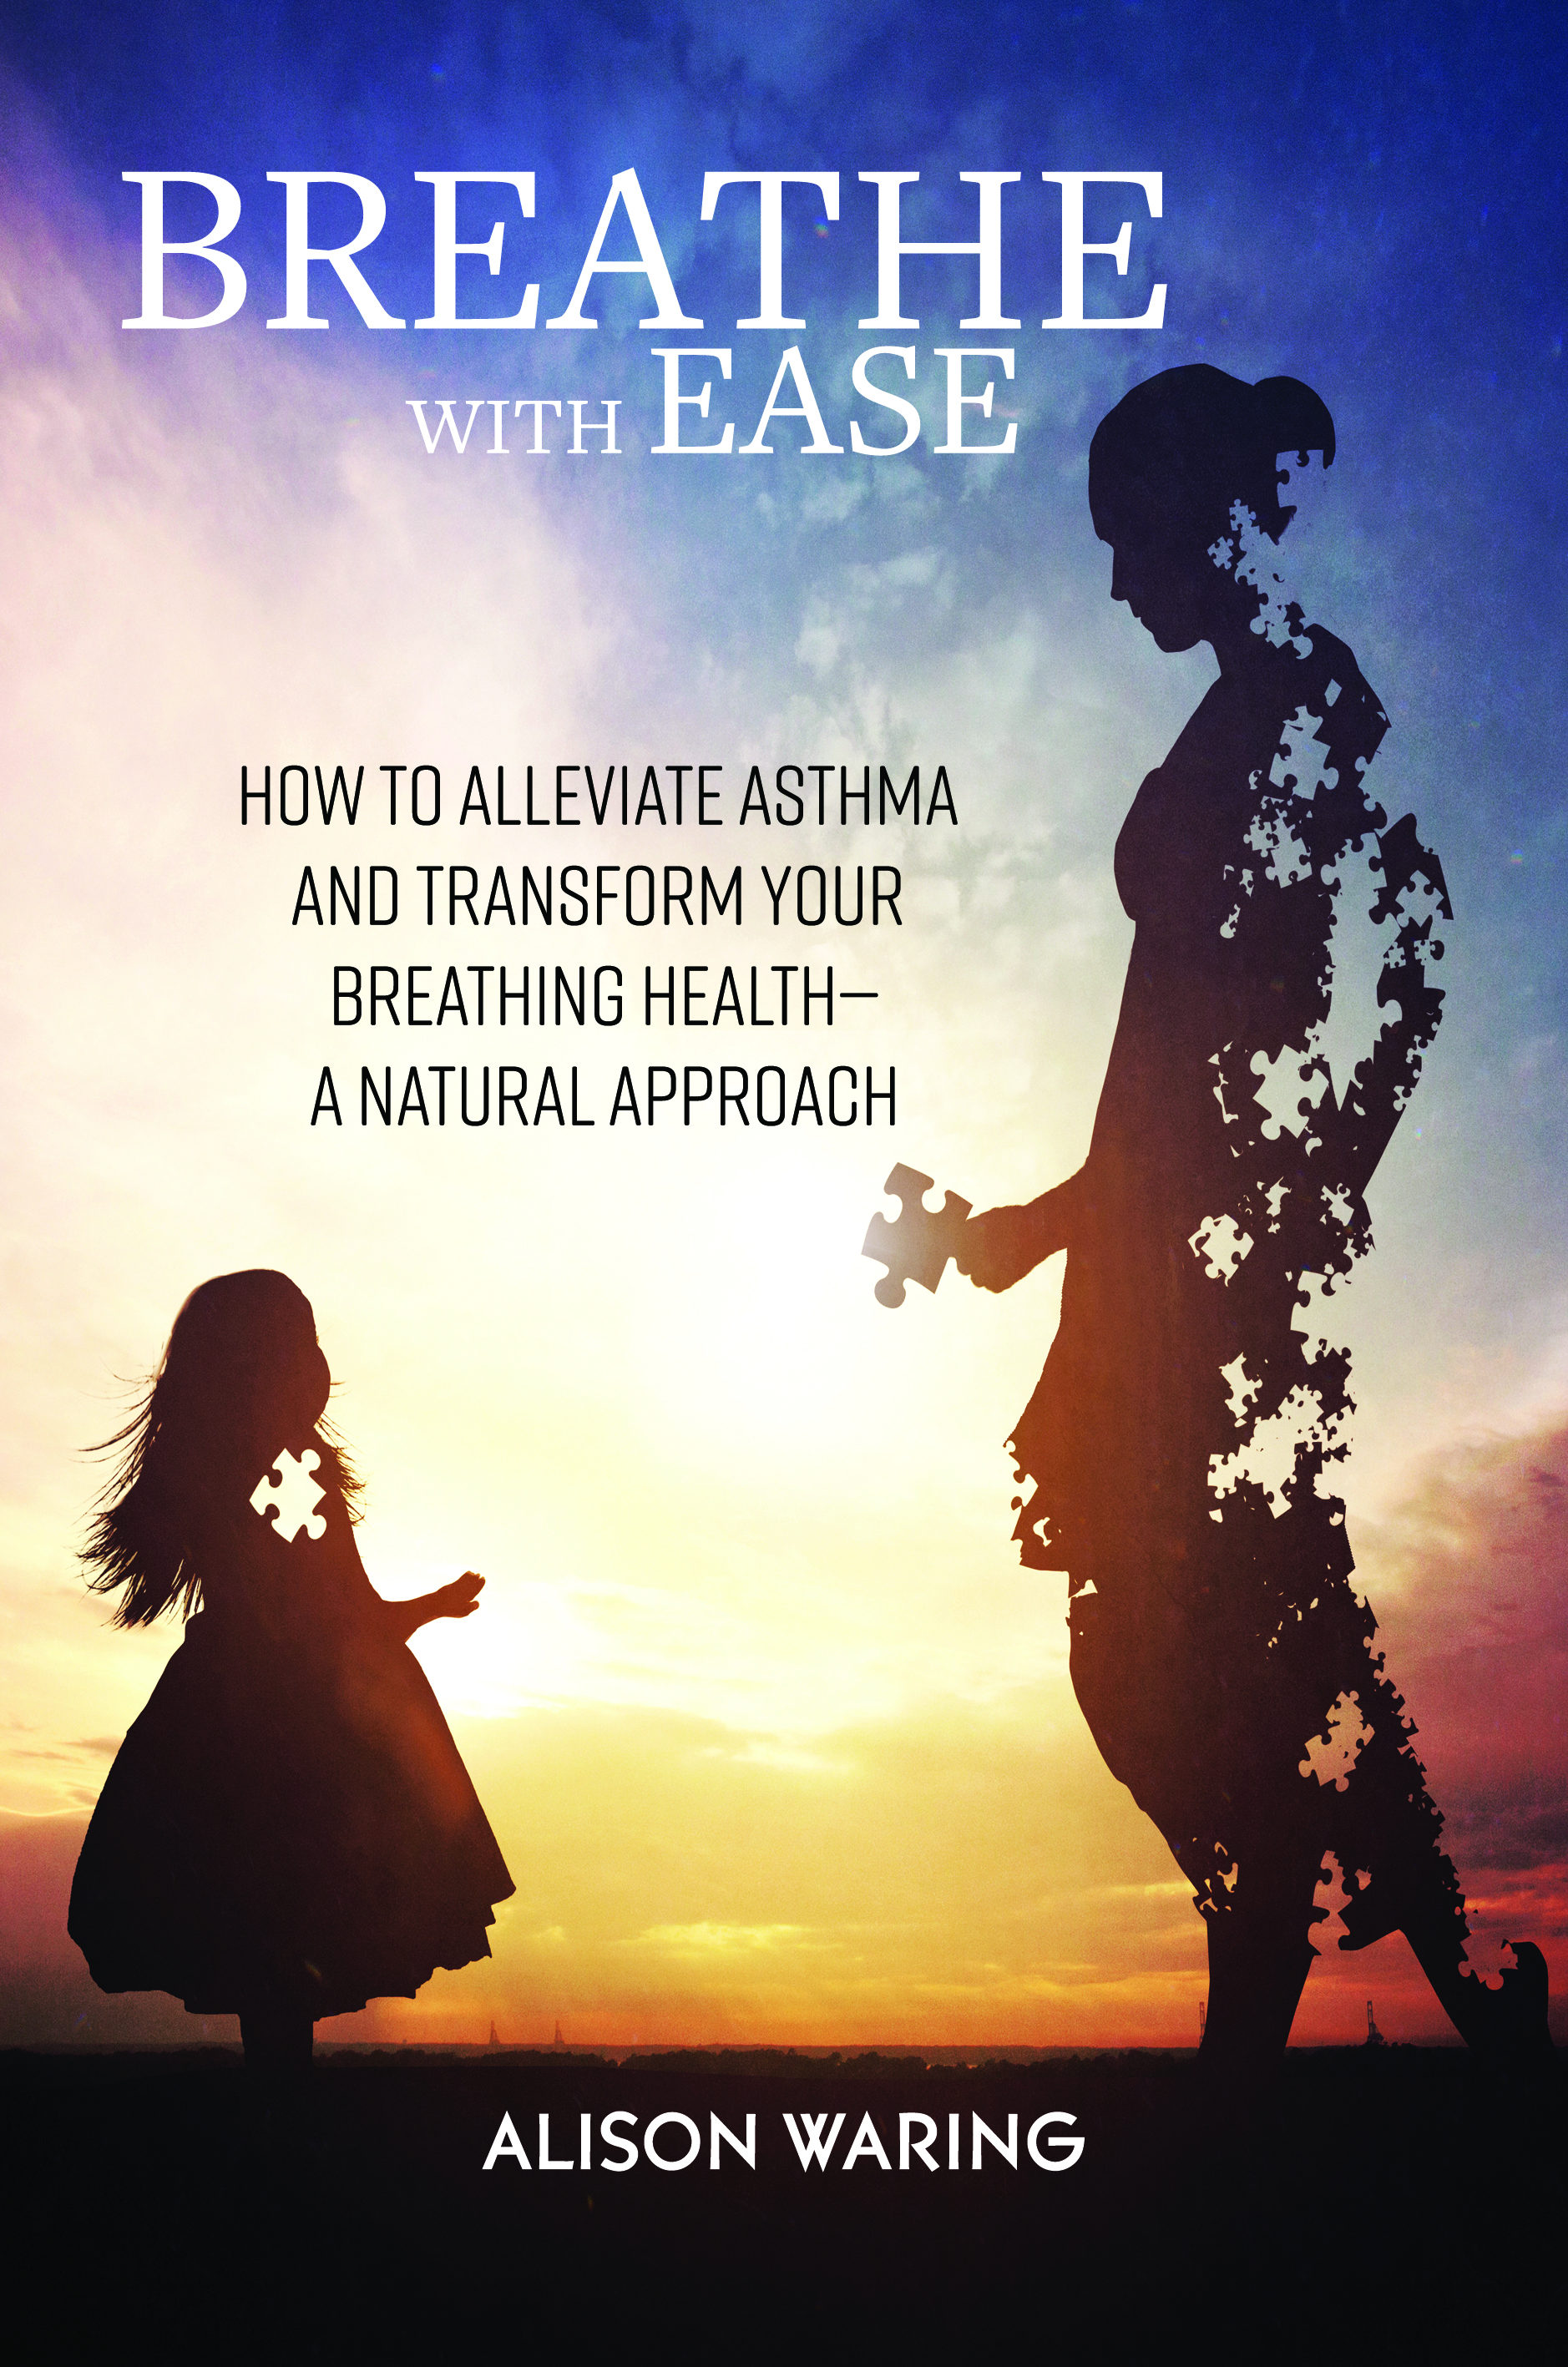 Breathe with Ease book cover Alison Waring (1)